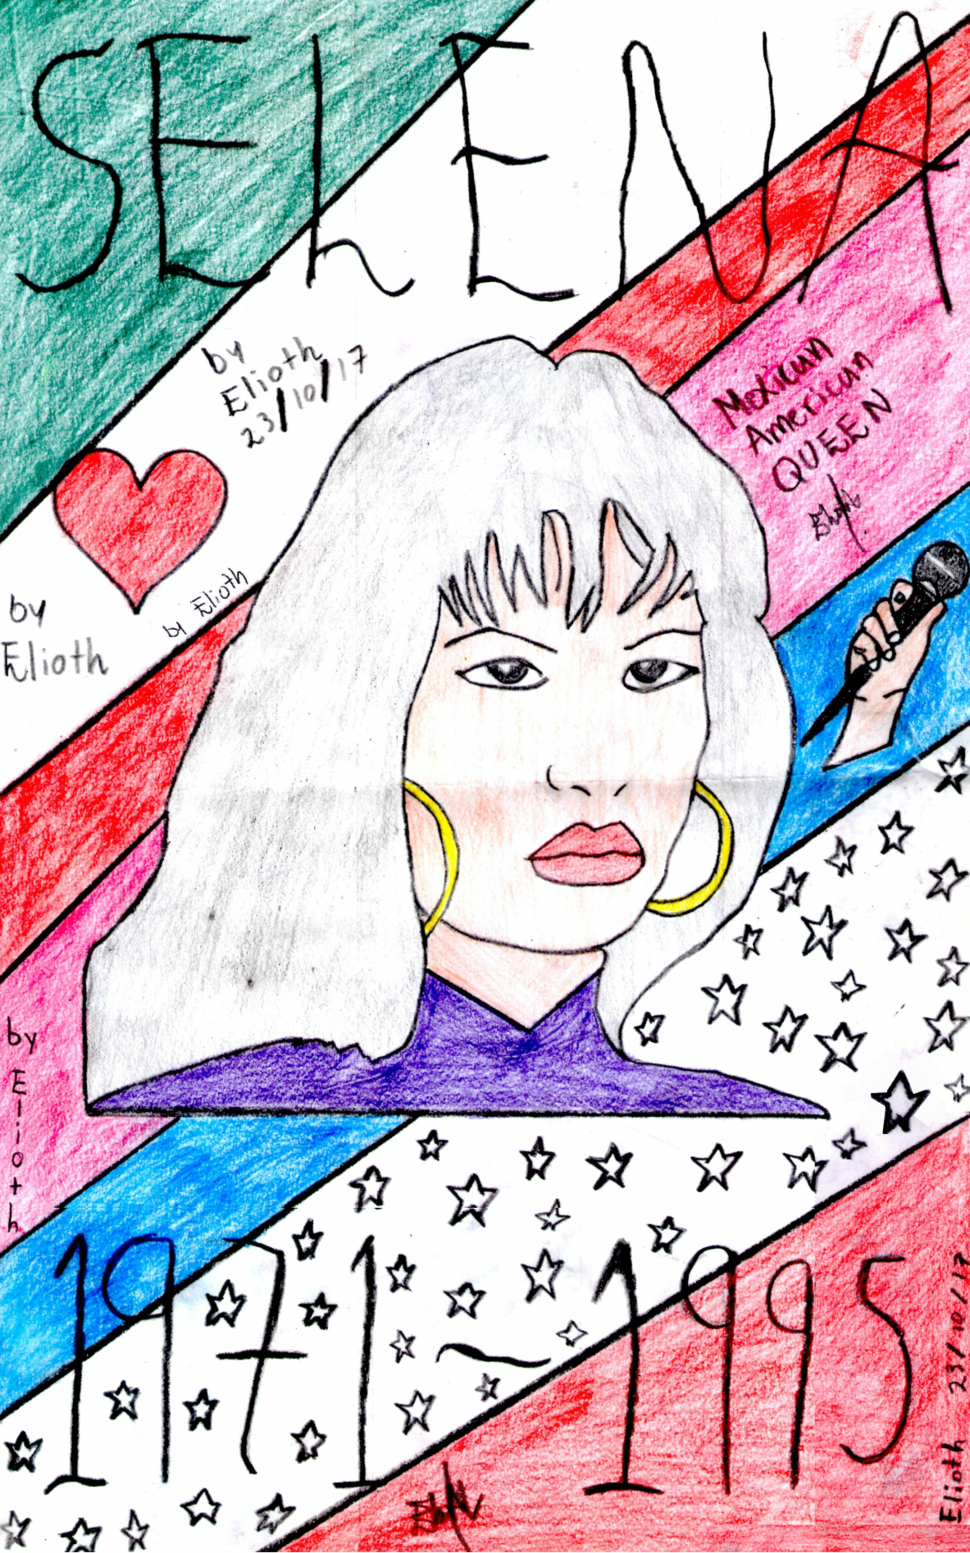 Selena Drawing by Elioth